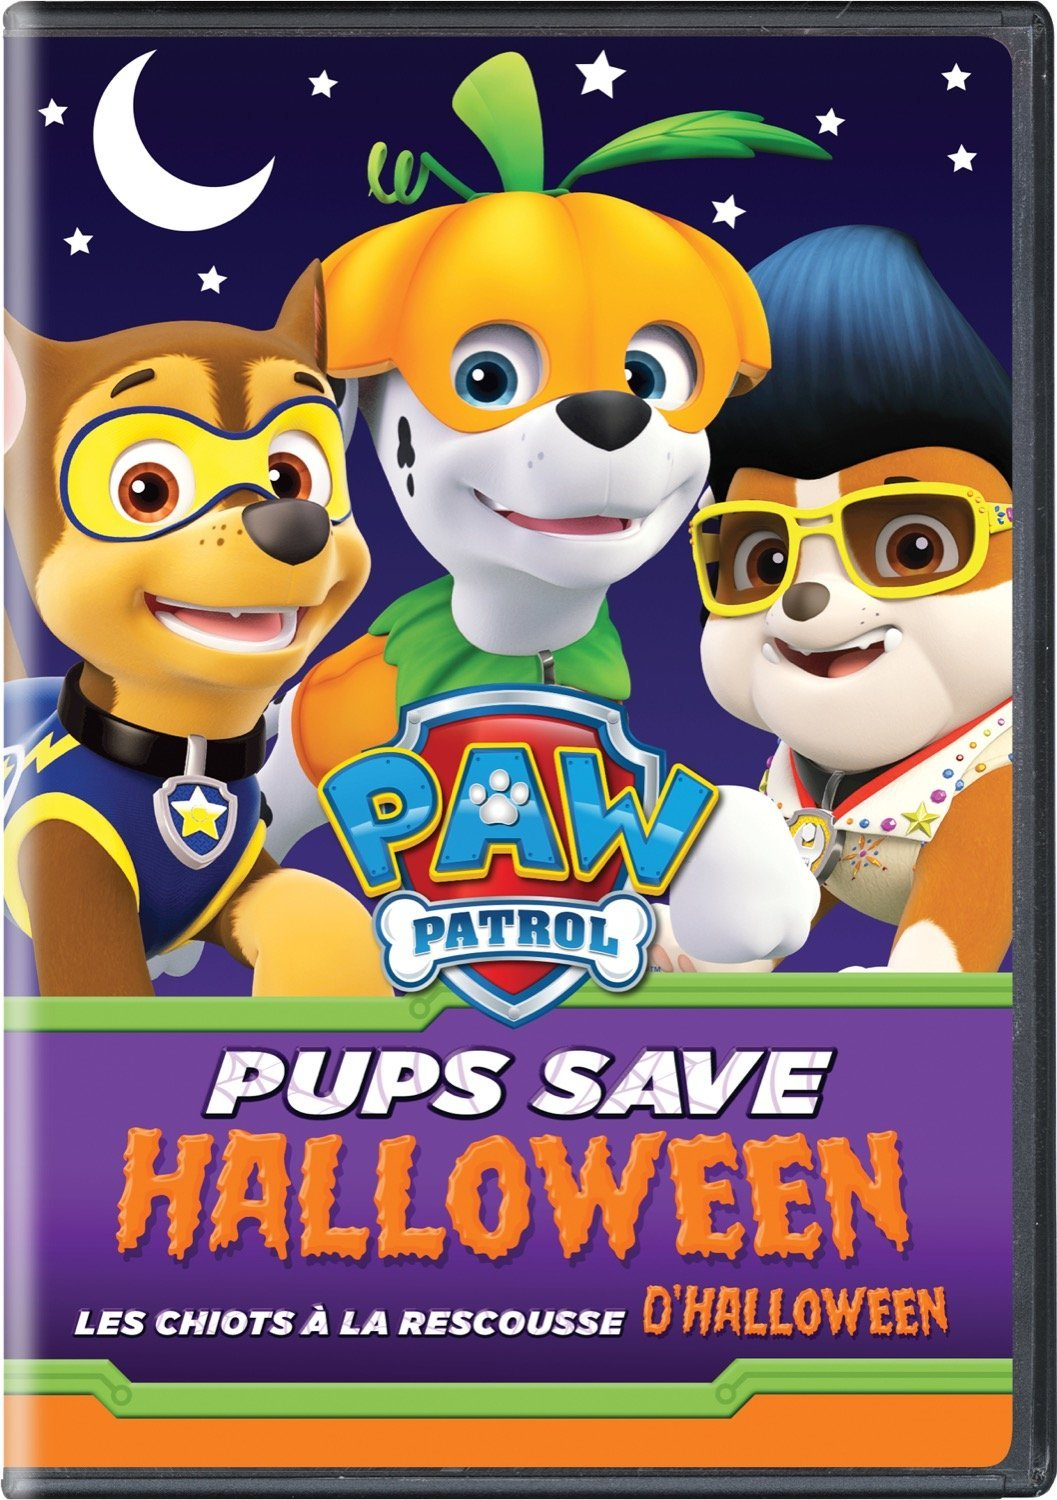 pups save halloween | paw patrol wiki | fandom poweredwikia